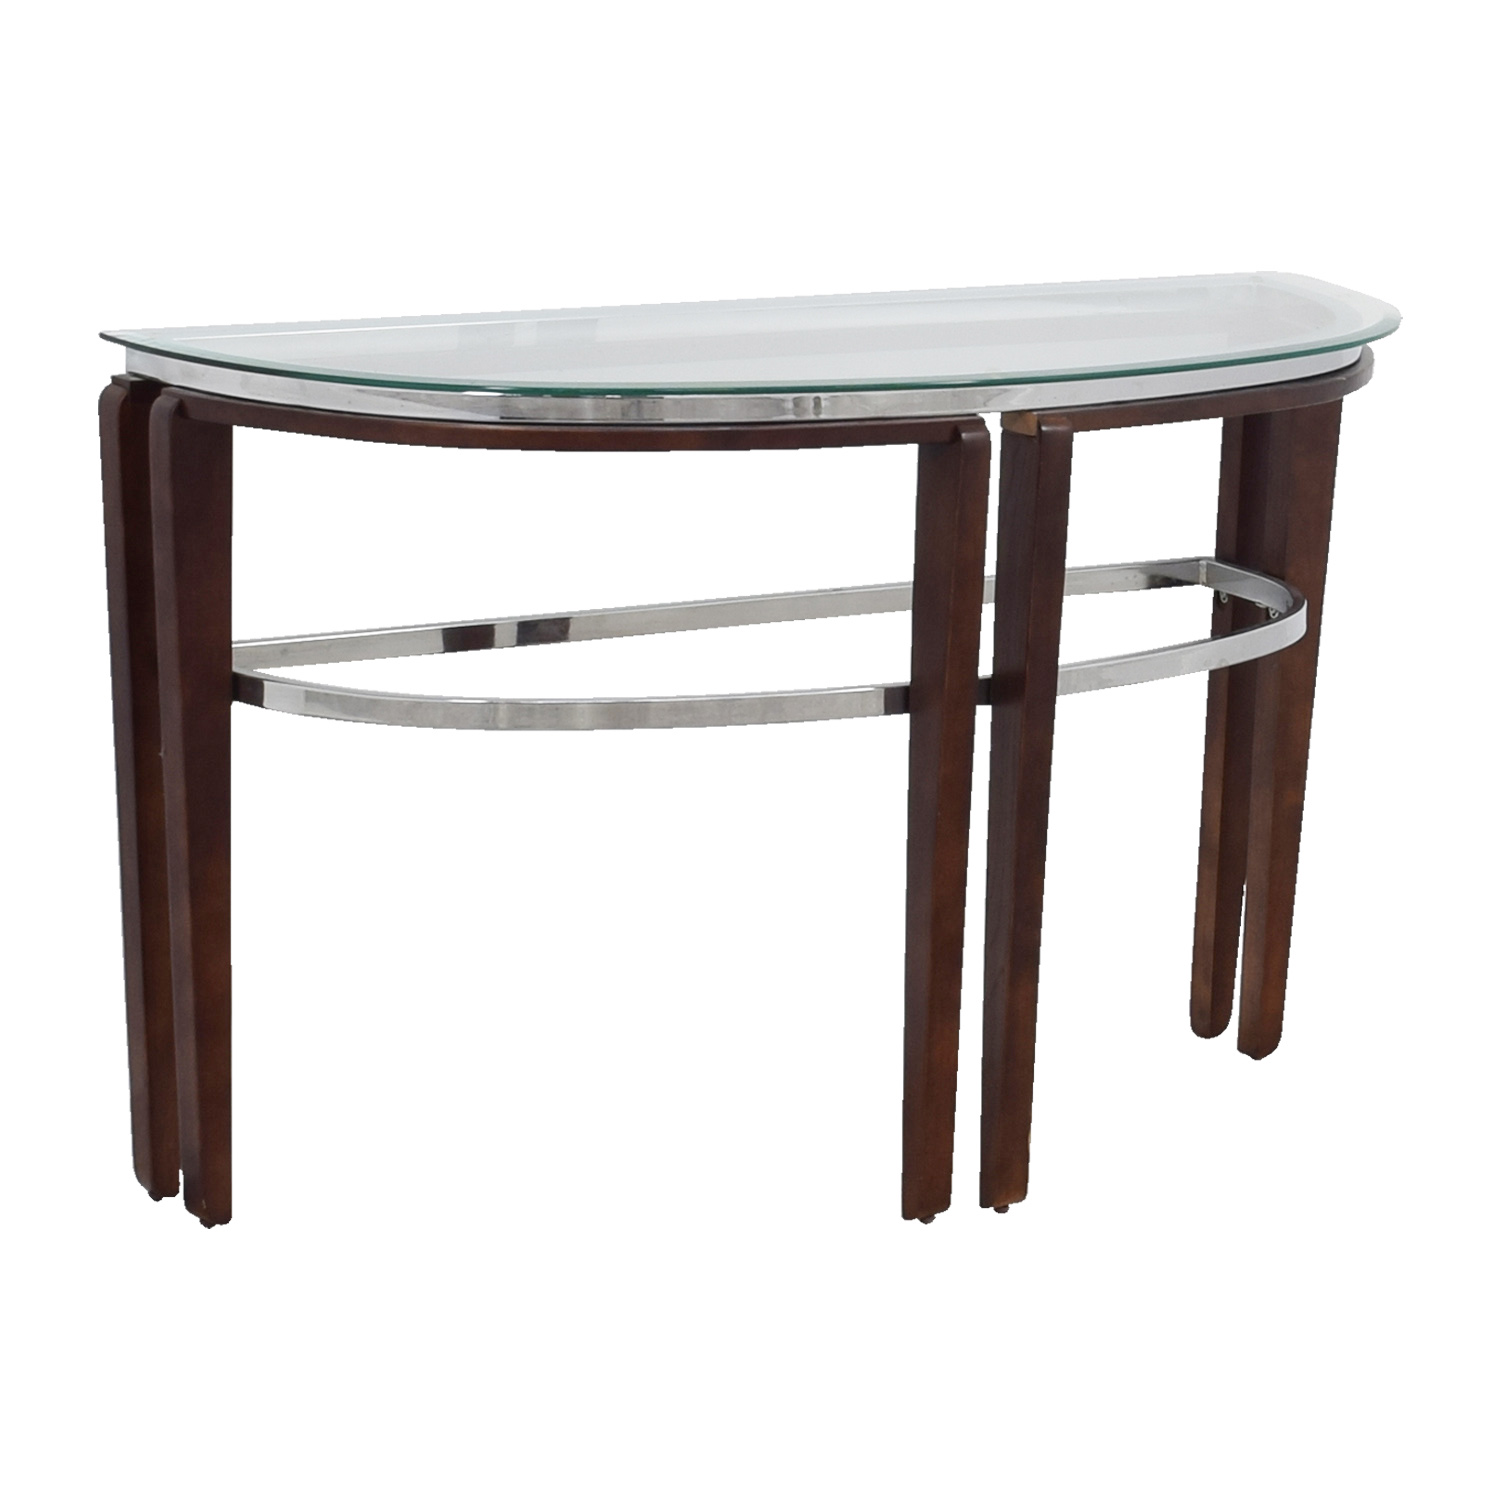 off glass and wood half hallway table tables second hand accent outdoor patio chairs target small coffee long thin garden furniture clearance threshold windham cabinet cream